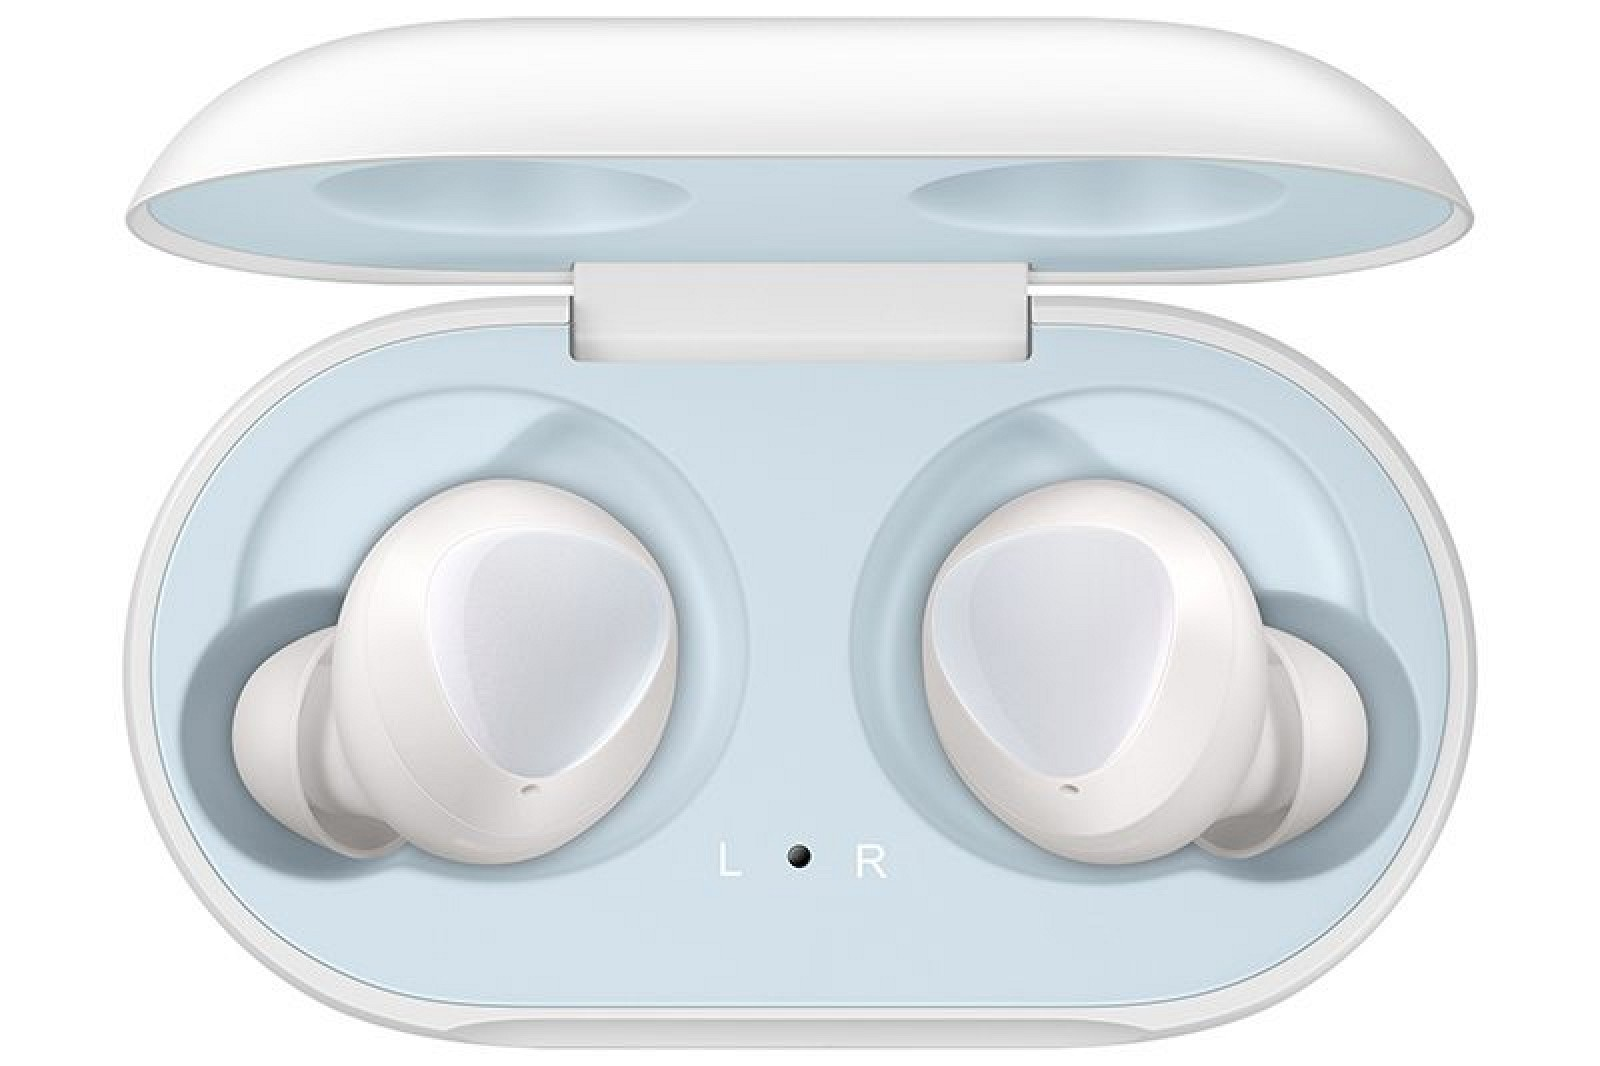 Samsung Launches 'Galaxy Buds' AirPods Competitor